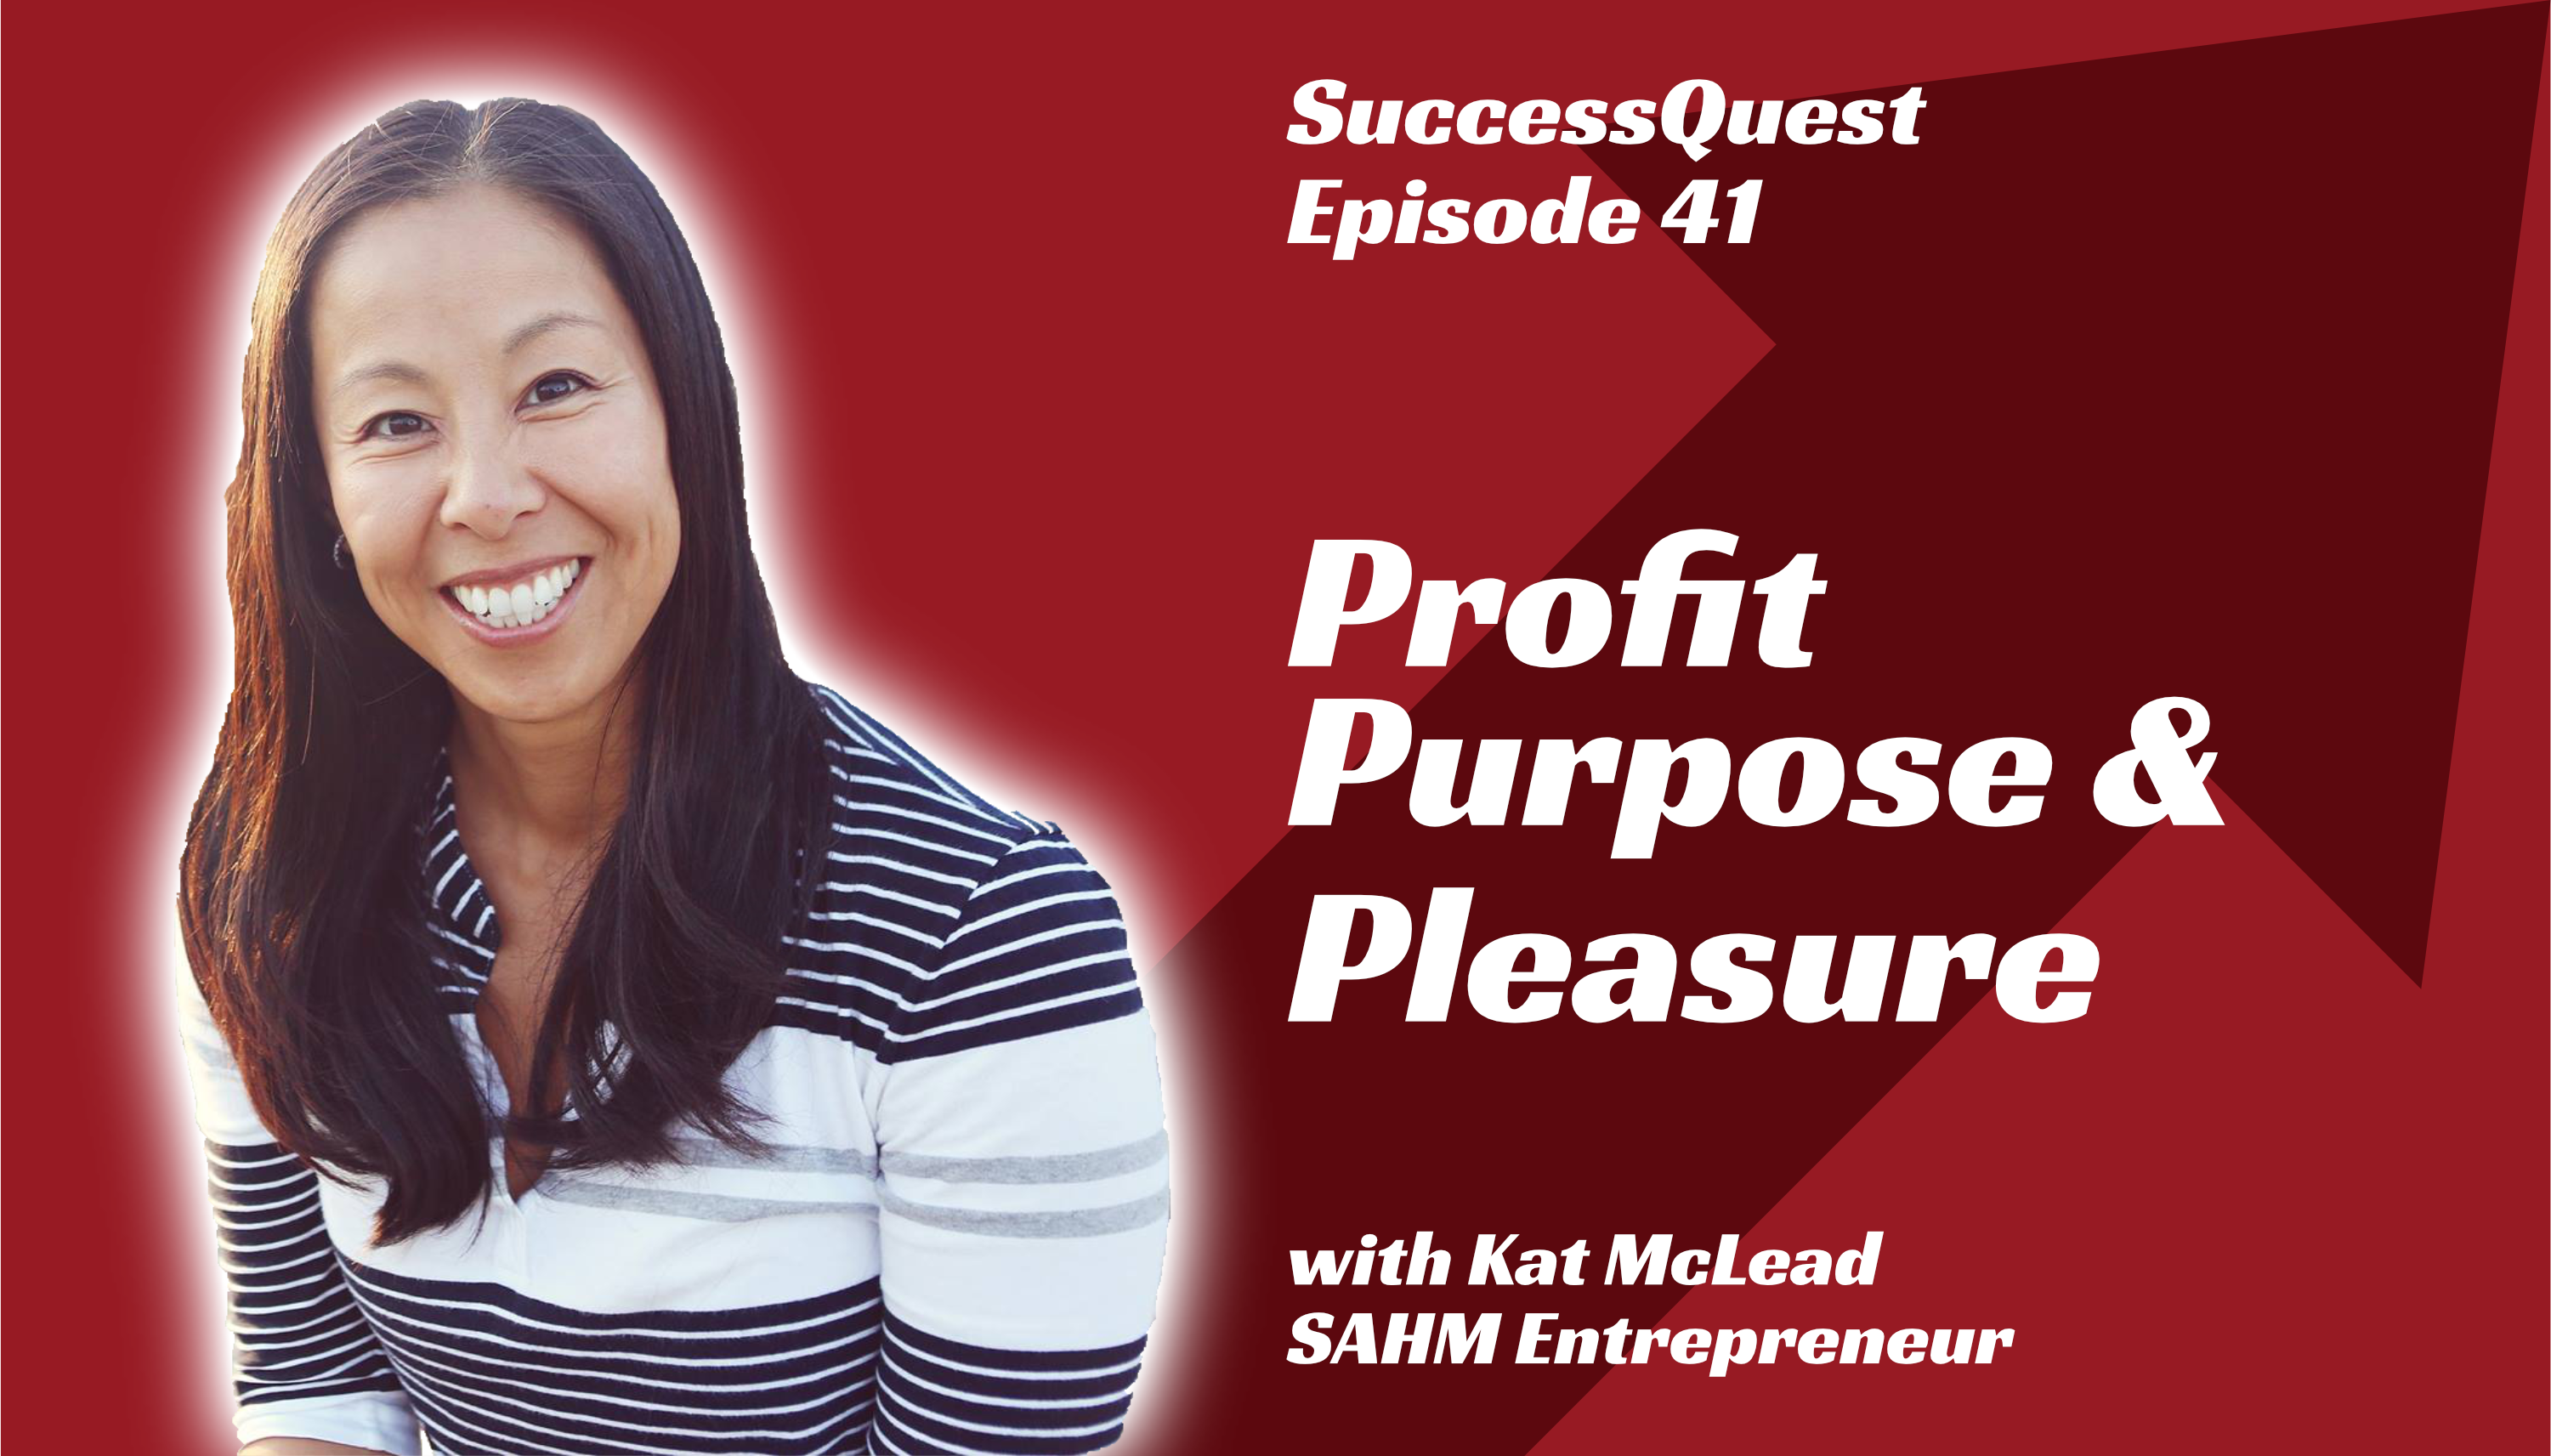 Kat McLead Stay at Home mom Business entrepreneur profit purpose pleasure success quest